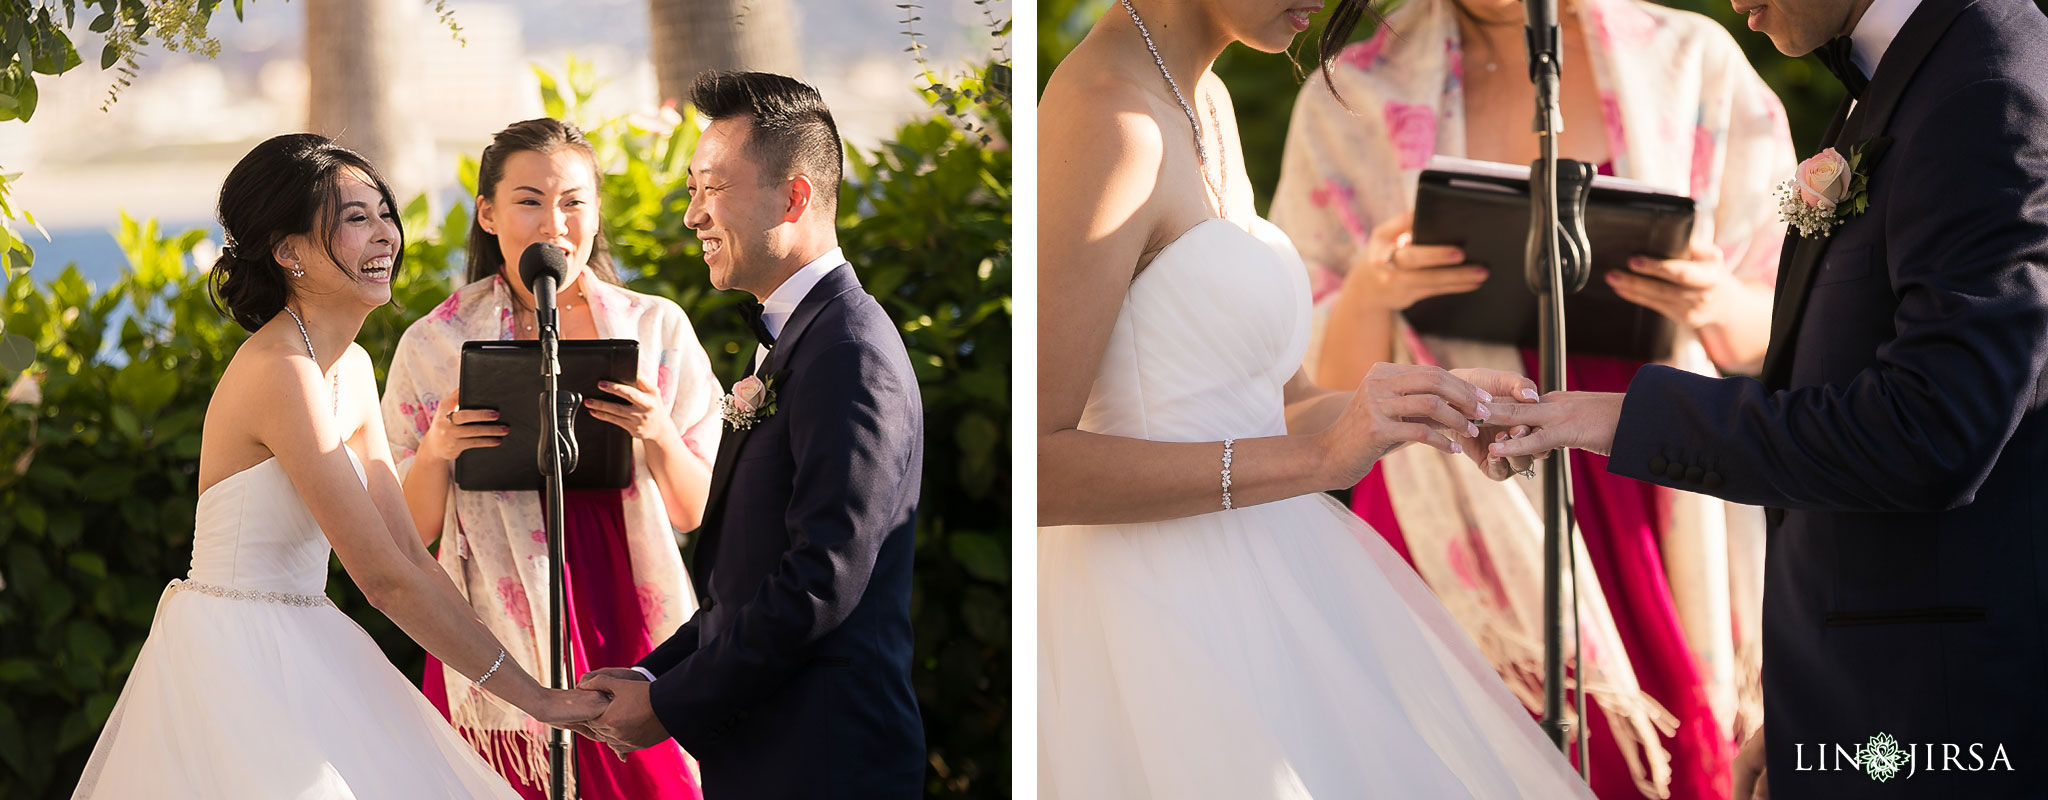 18 portofino hotel redondo beach wedding ceremony photography